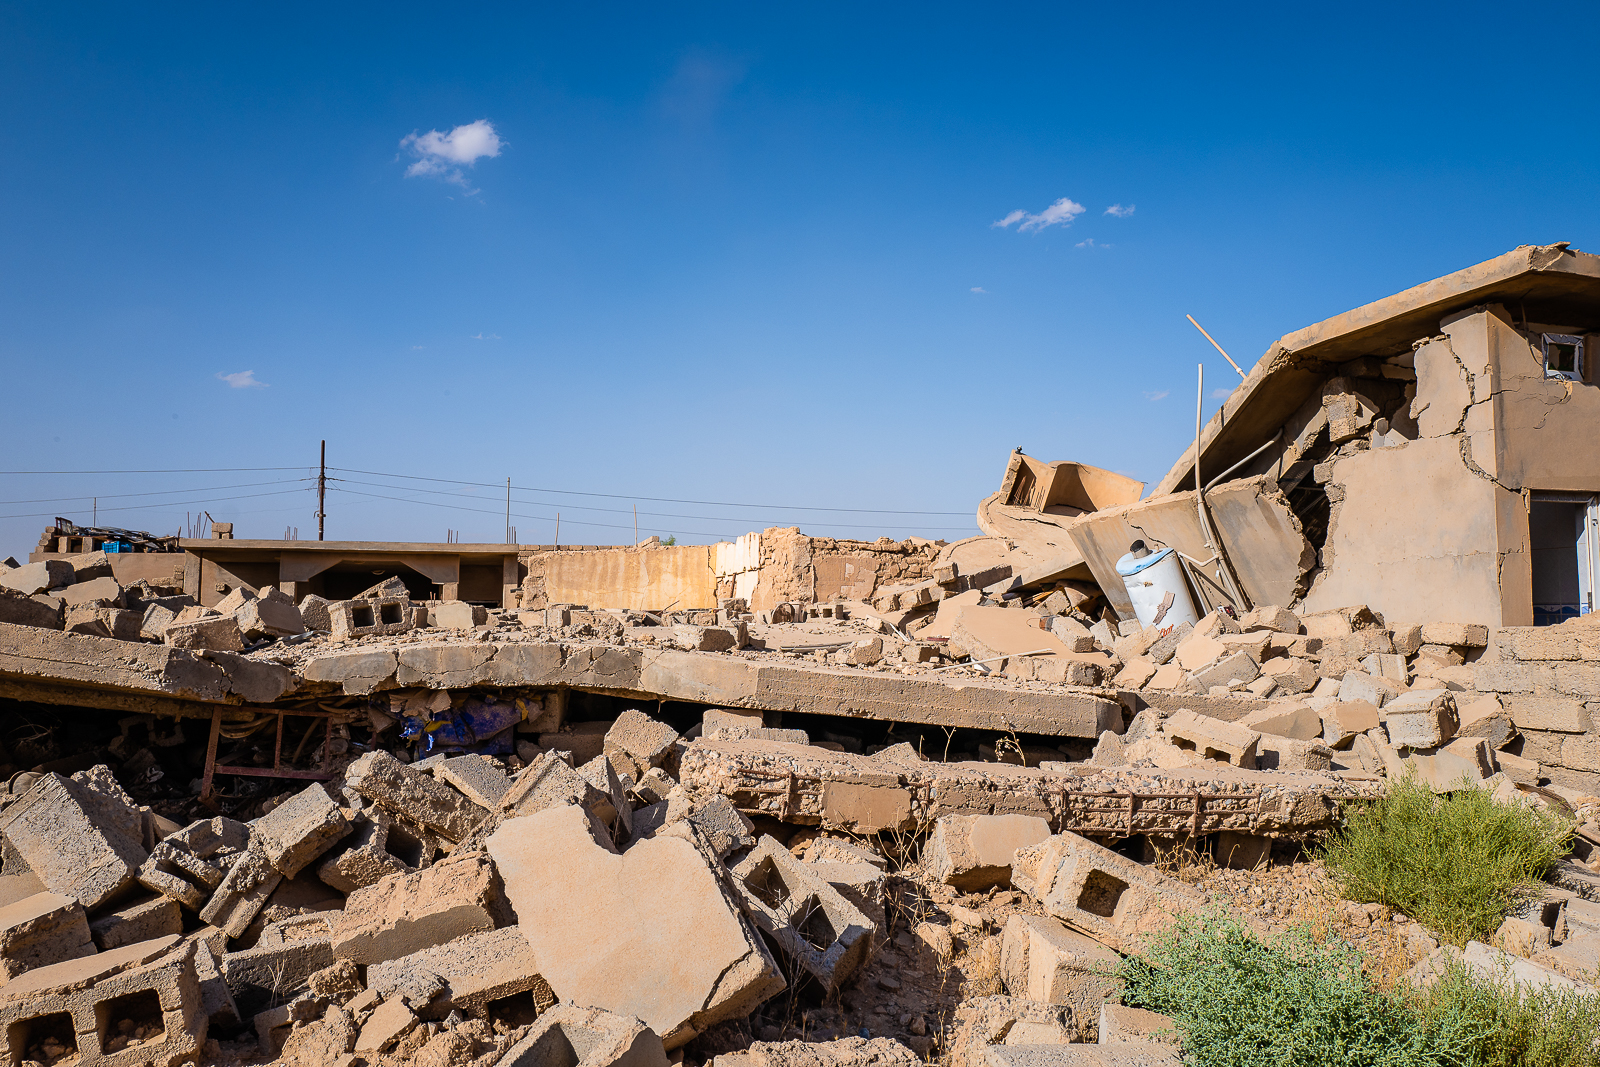 The destroyed villages under the Sinjar mount were the Yazidi people lived